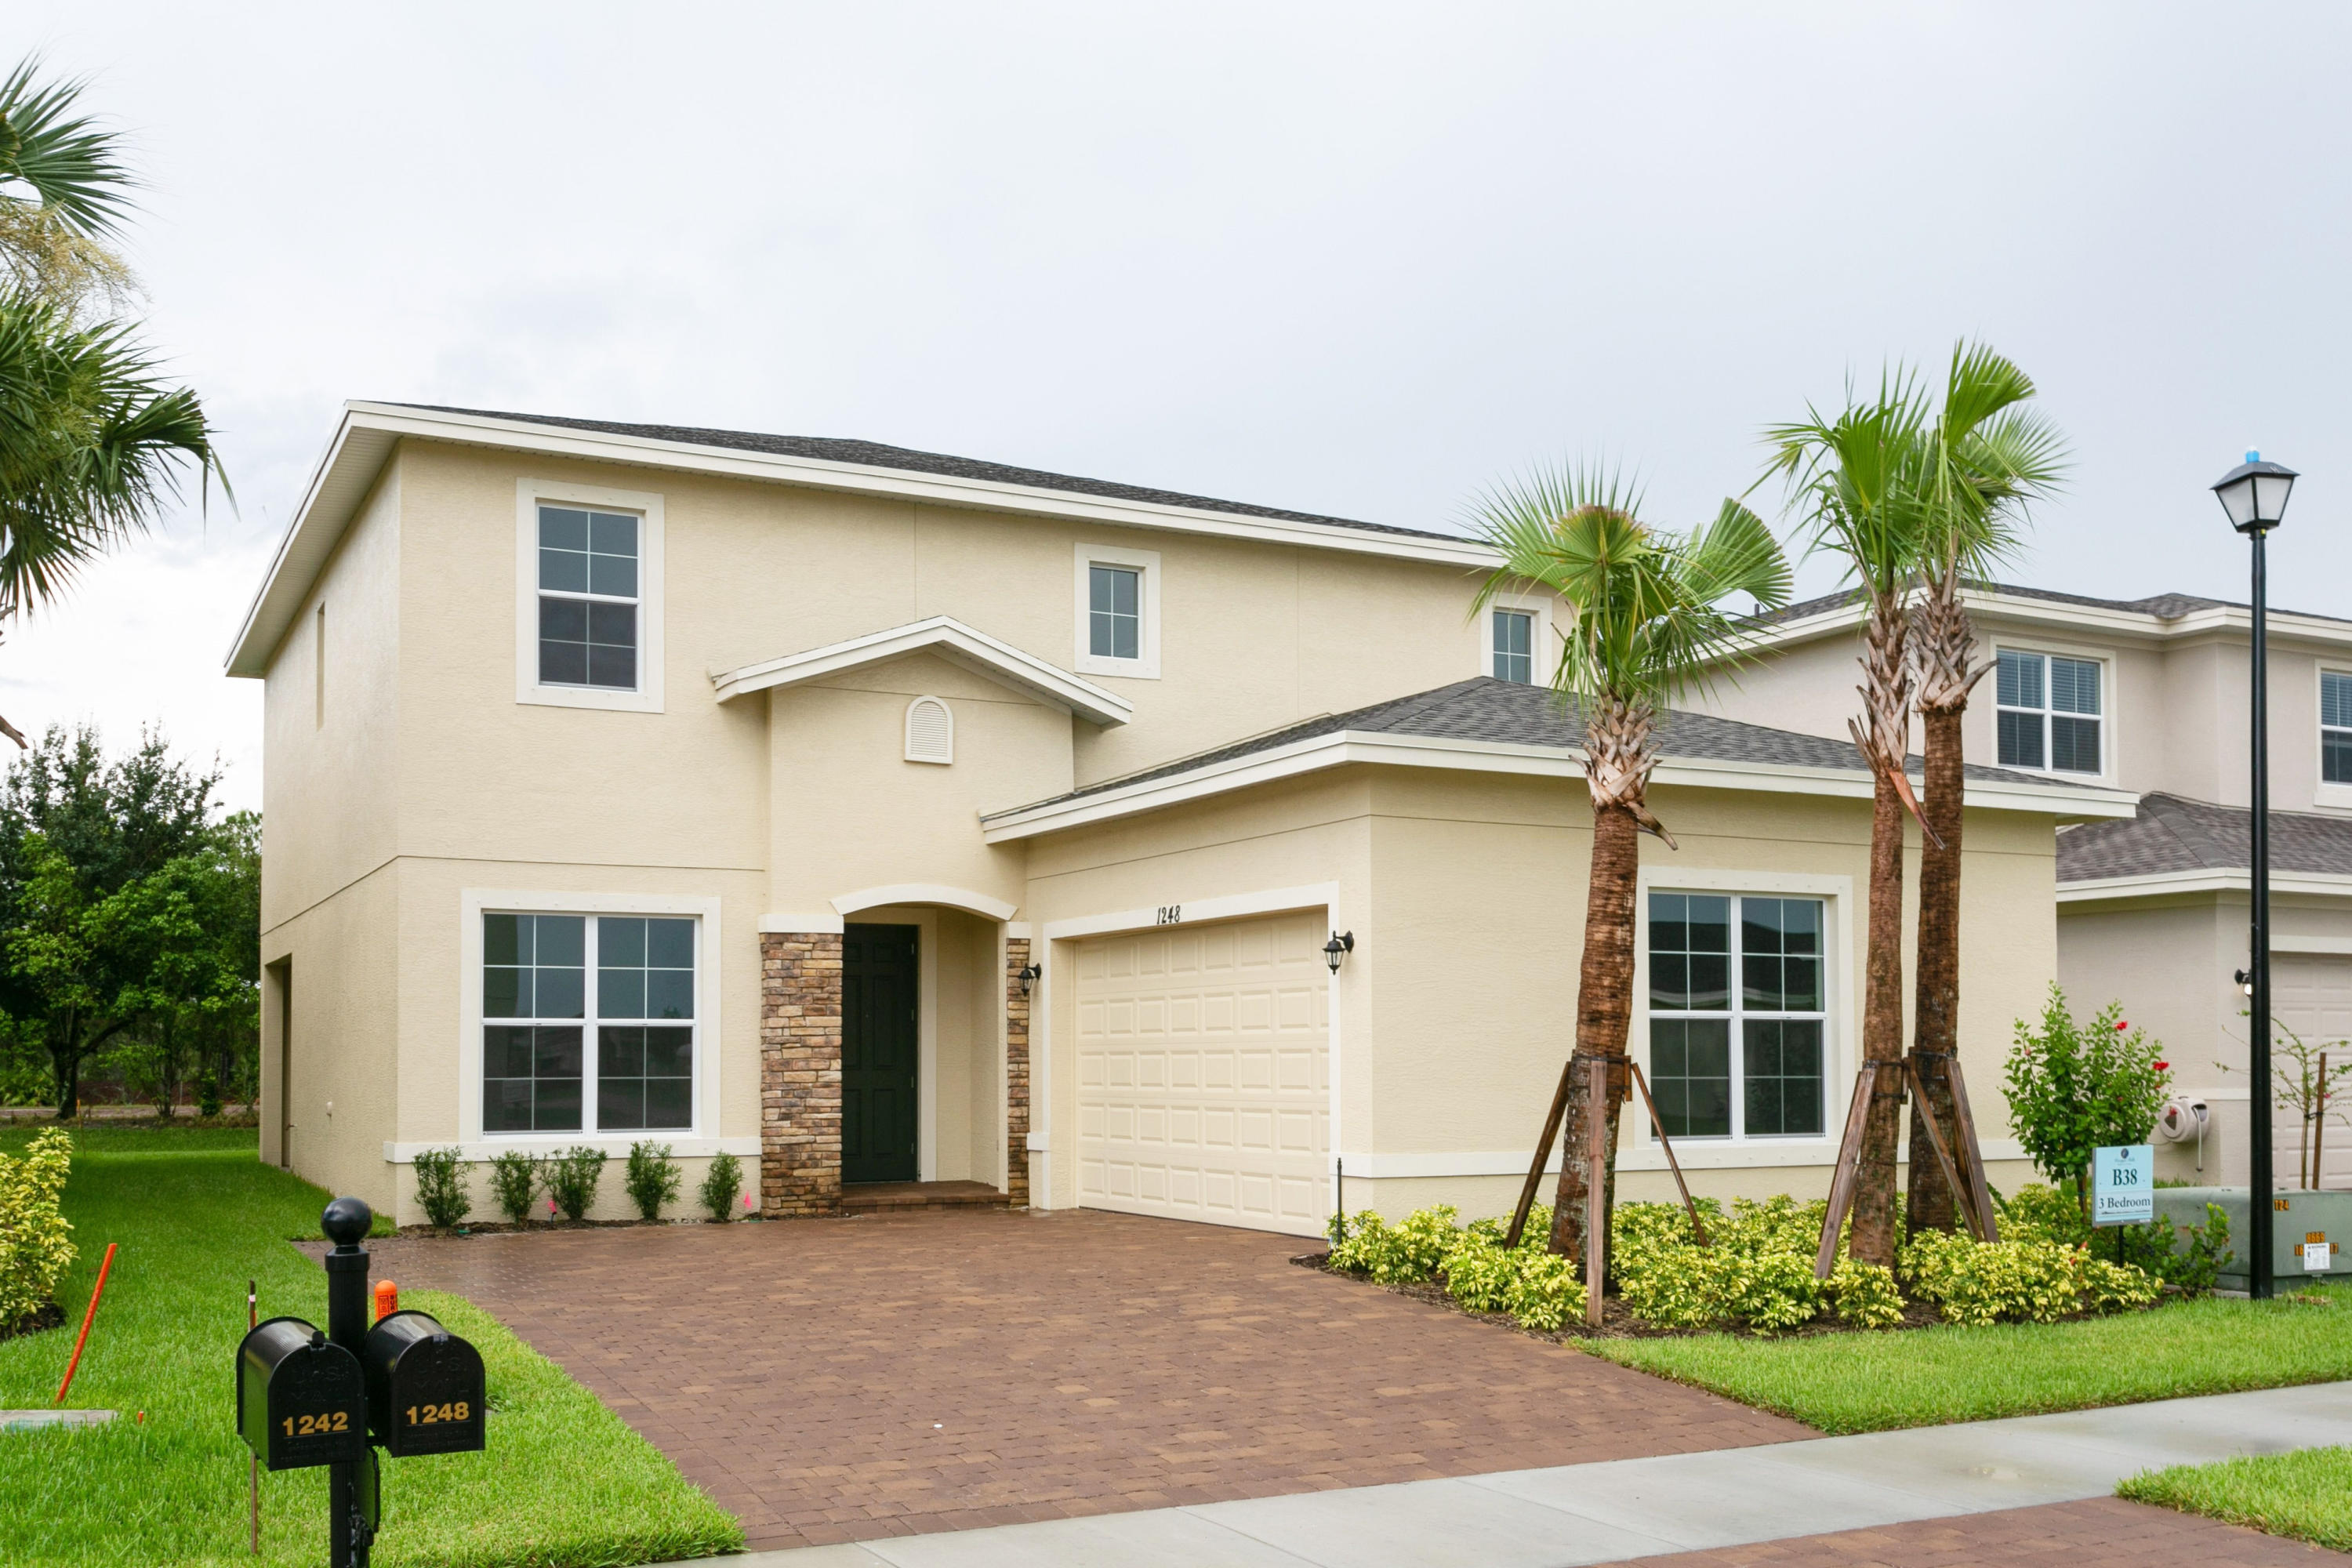 1248 NW Leonardo Circle, Port Saint Lucie, Florida